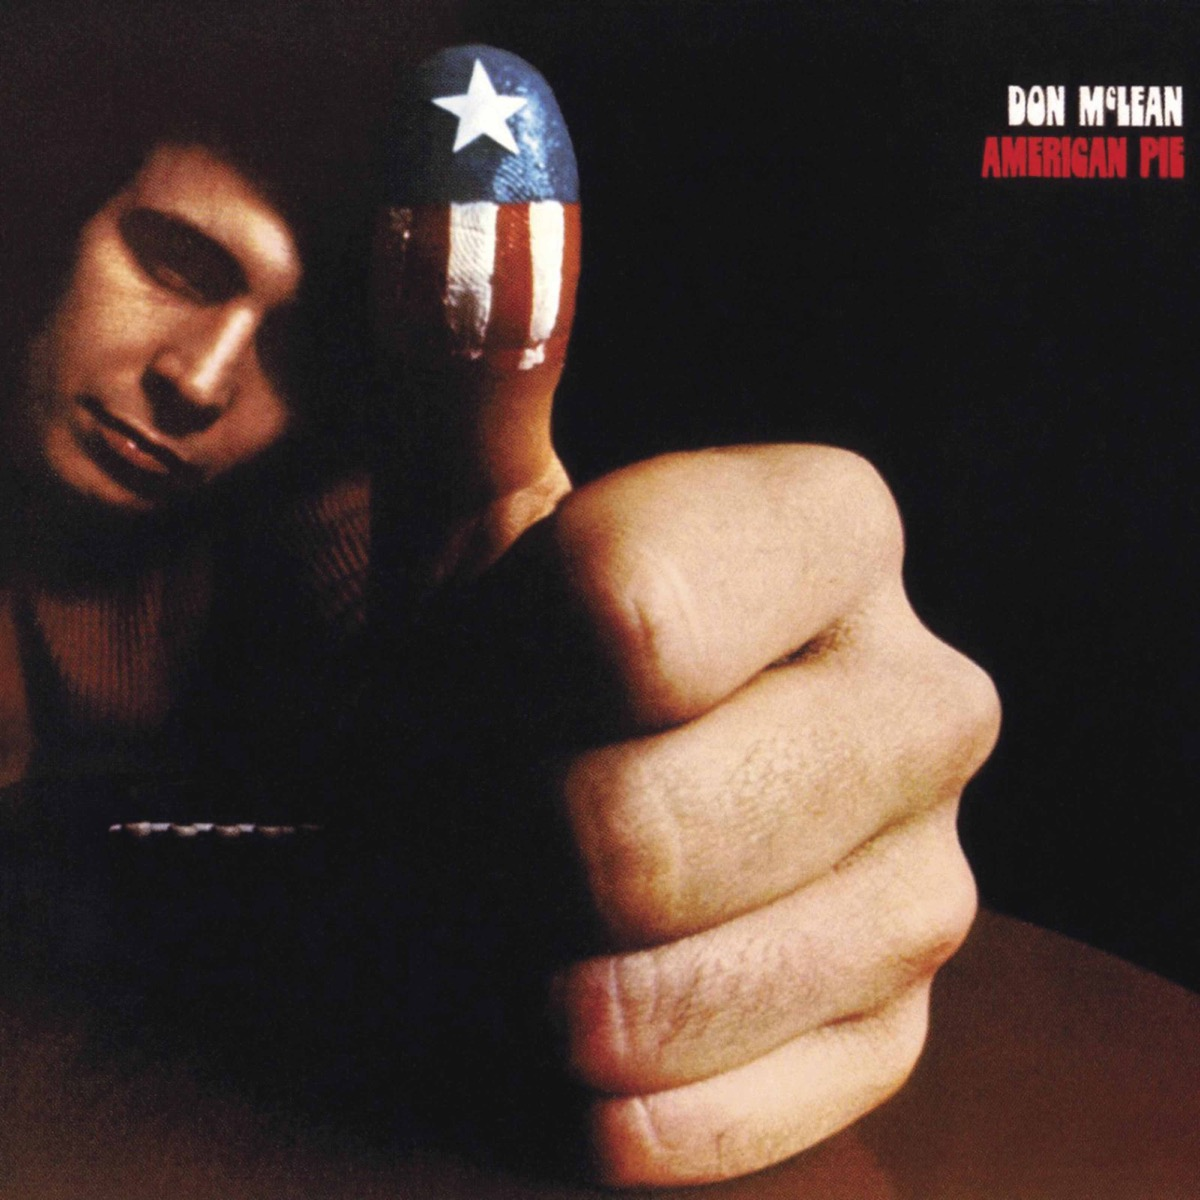 cover art for american pie song by don mclean, 1970s nsotalgia